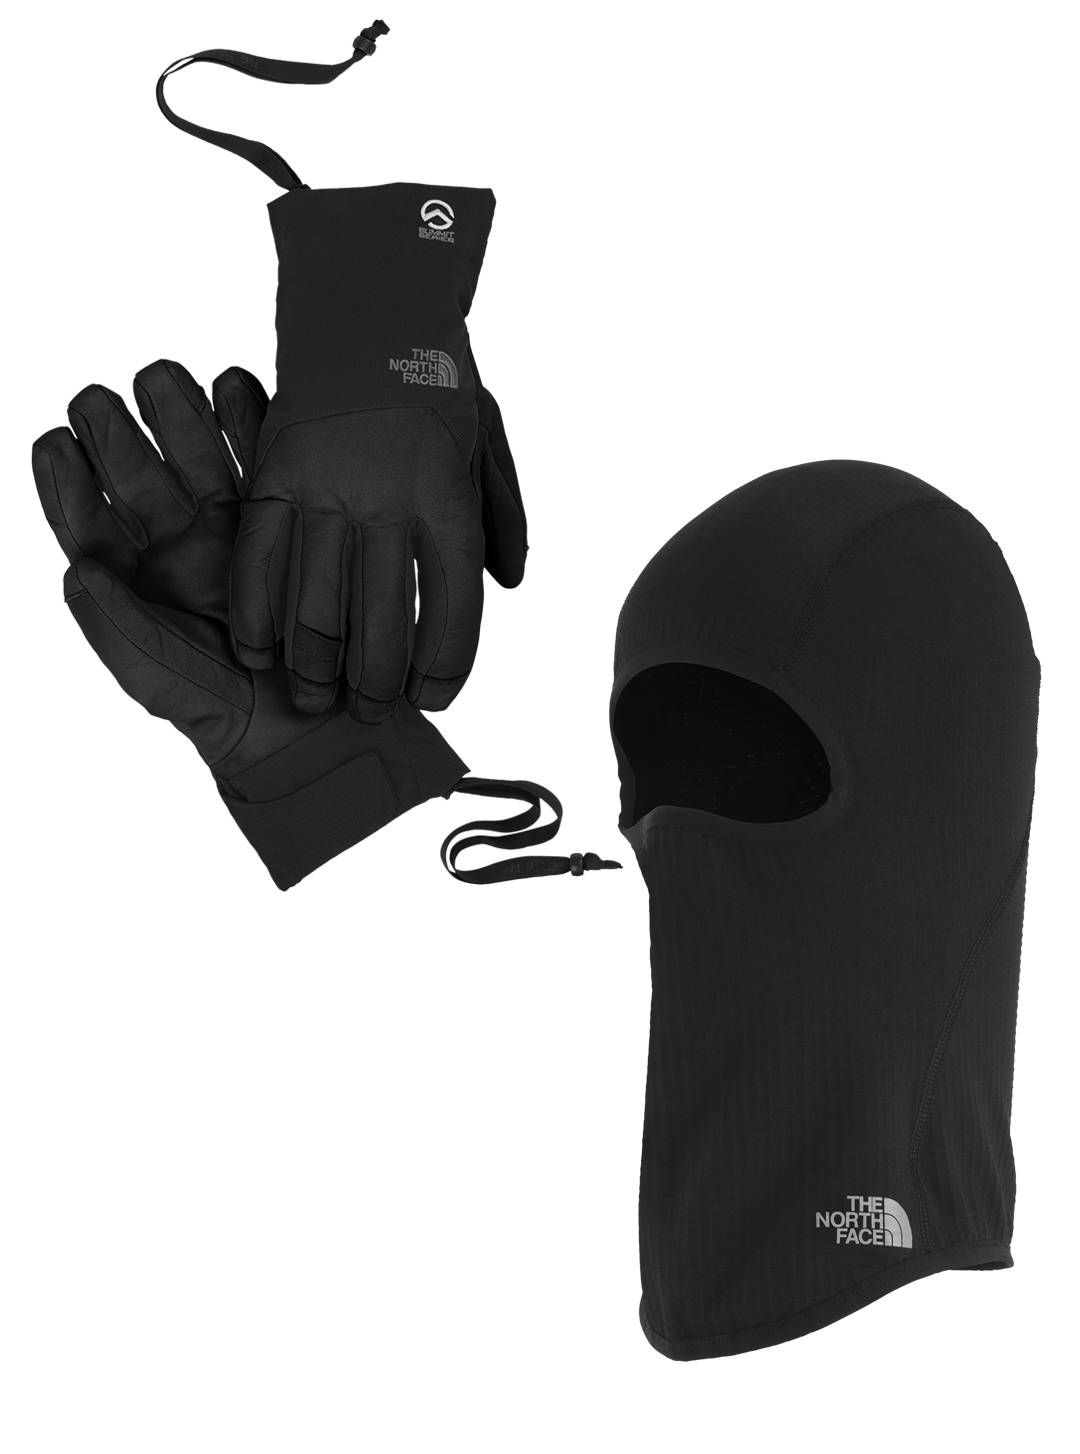 The North Face Patrol Glove. This waterproof-treated leather and Gore-Tex® 500cd9d7ee0b